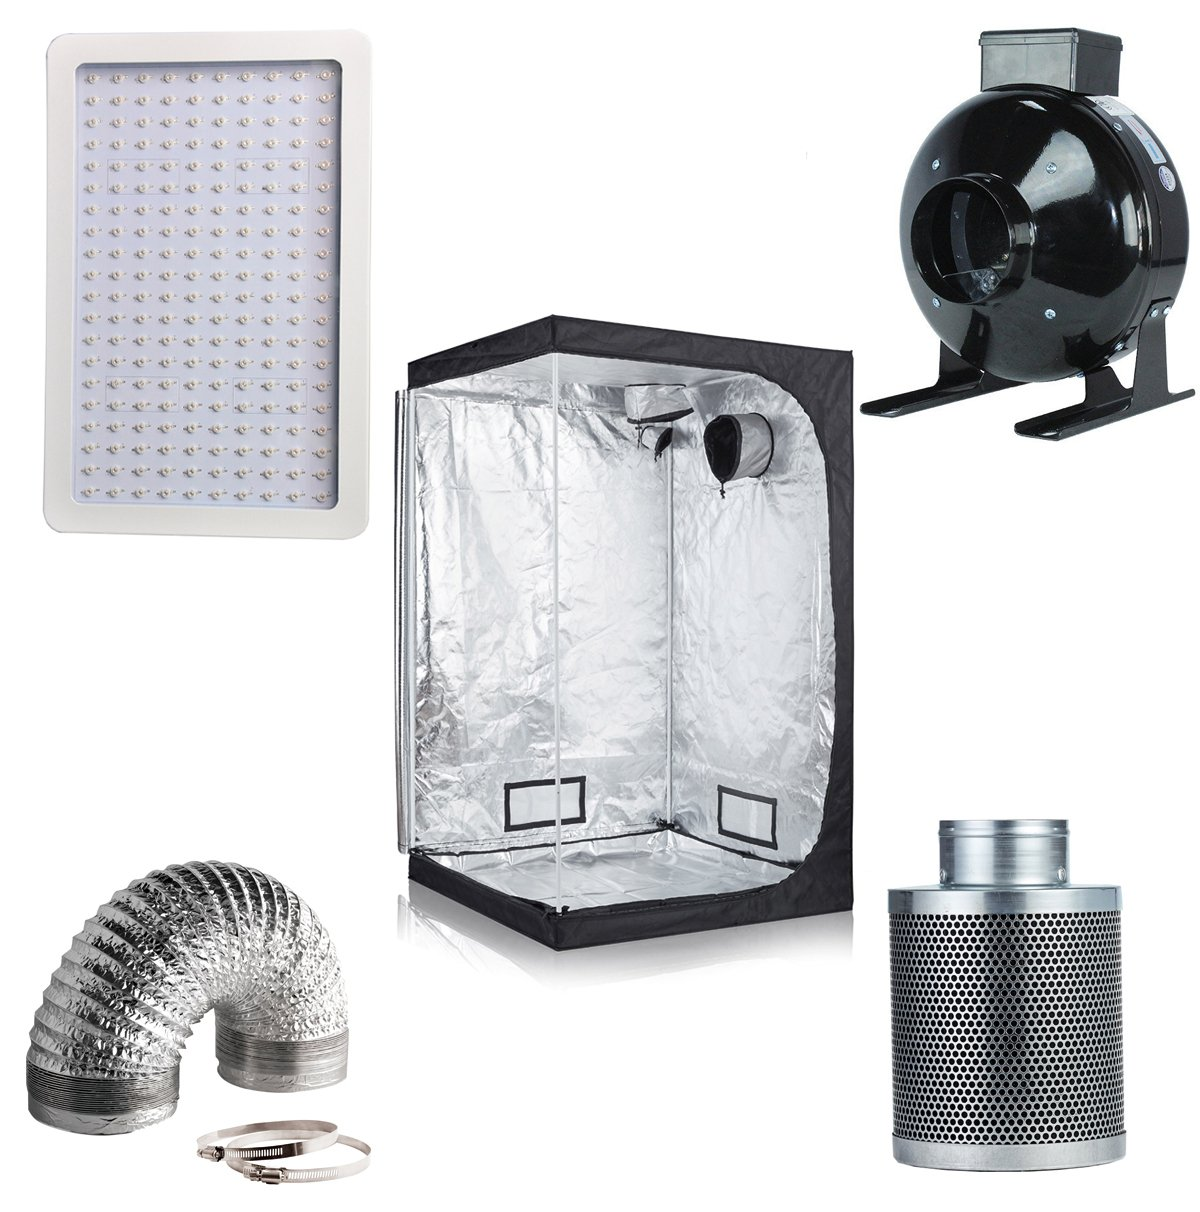 Hongruilite 300w/600w LED Grow Light+Multi-sized Grow Tent+4'' Inline Fan Carbon Air Filter Ducting Combo for Hydroponic Indoor Plant Growing System (600W LED+32''x32''x63''Grow Tent+4''Filter Kit)